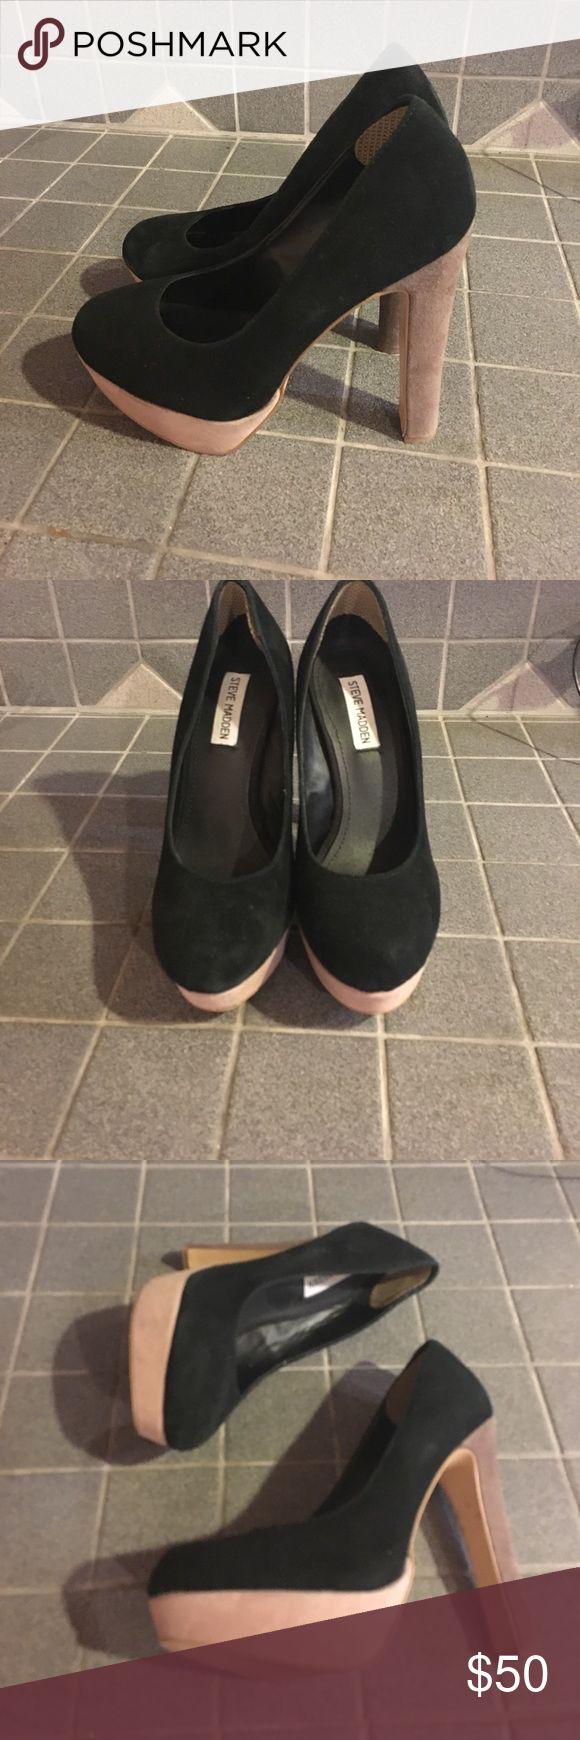 Black/grey/tan color block Steve Madden pumps Pick up these stylish heels by Steve Madden for a great price! The black, grey and tan color block makes them look great with many outfits. Rarely used and stored in a pet and smoke free home. Steve Madden Shoes Heels